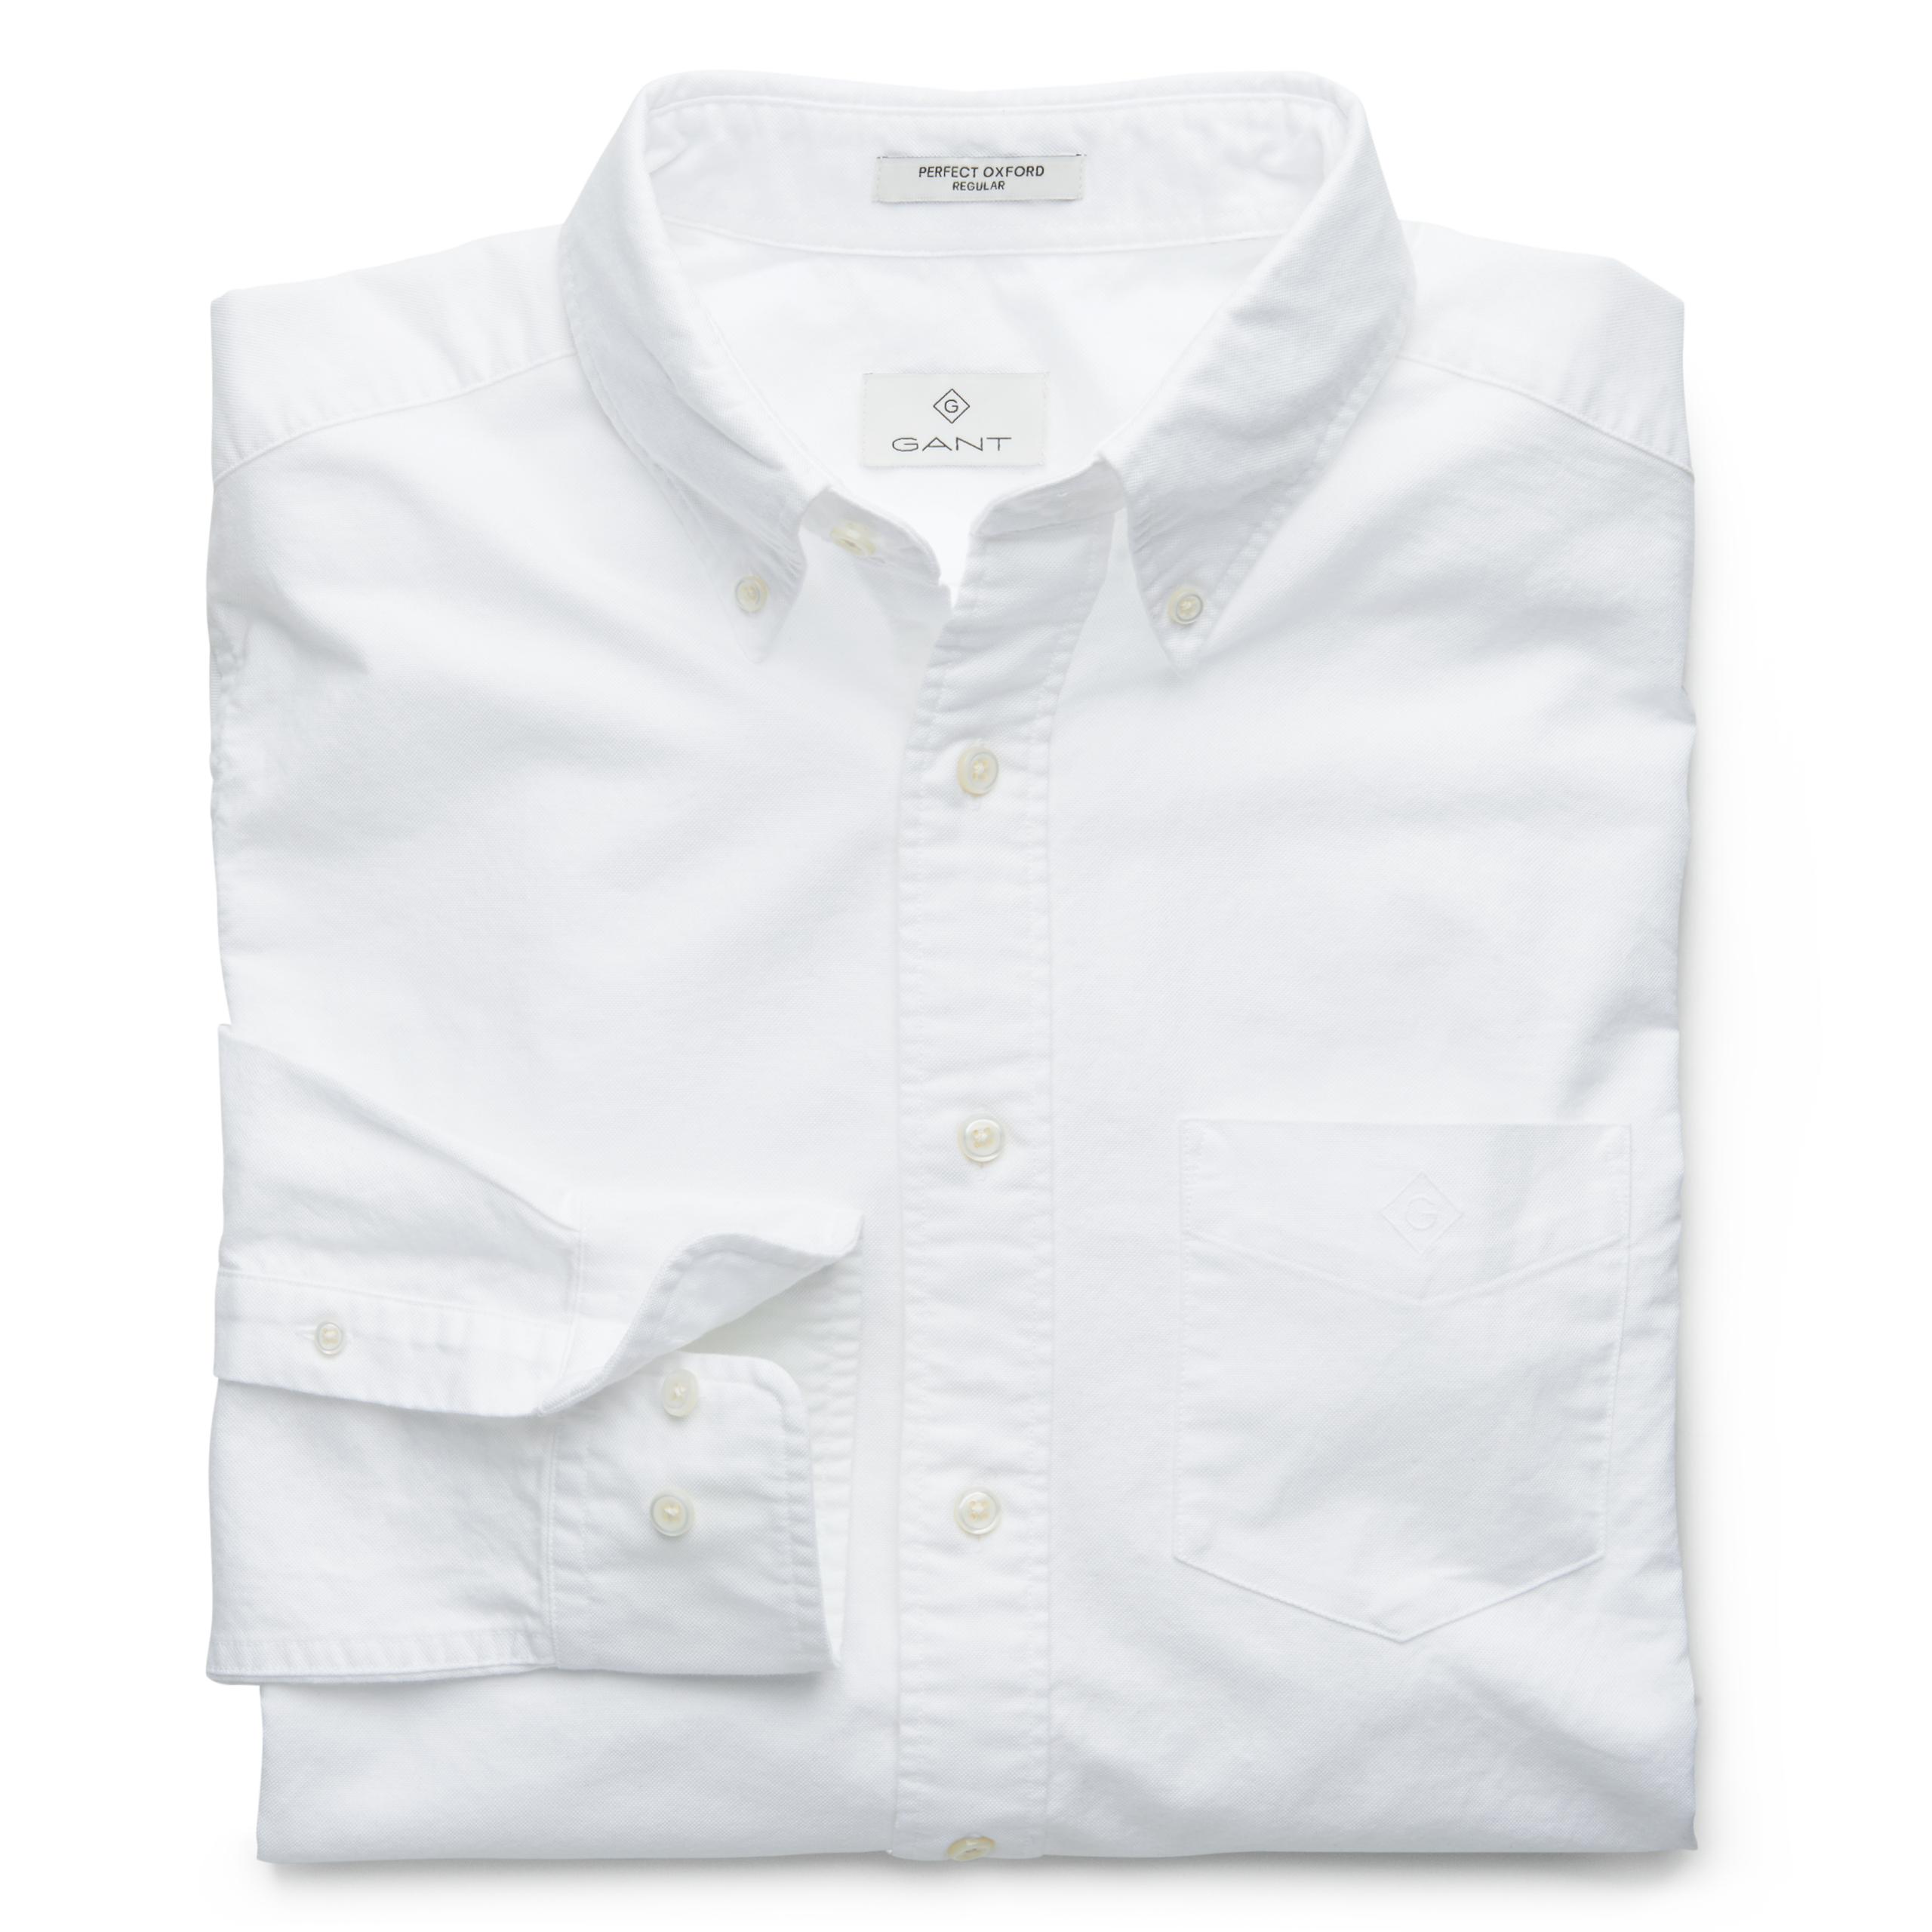 GANT White Slim Fit Oxford Shirt